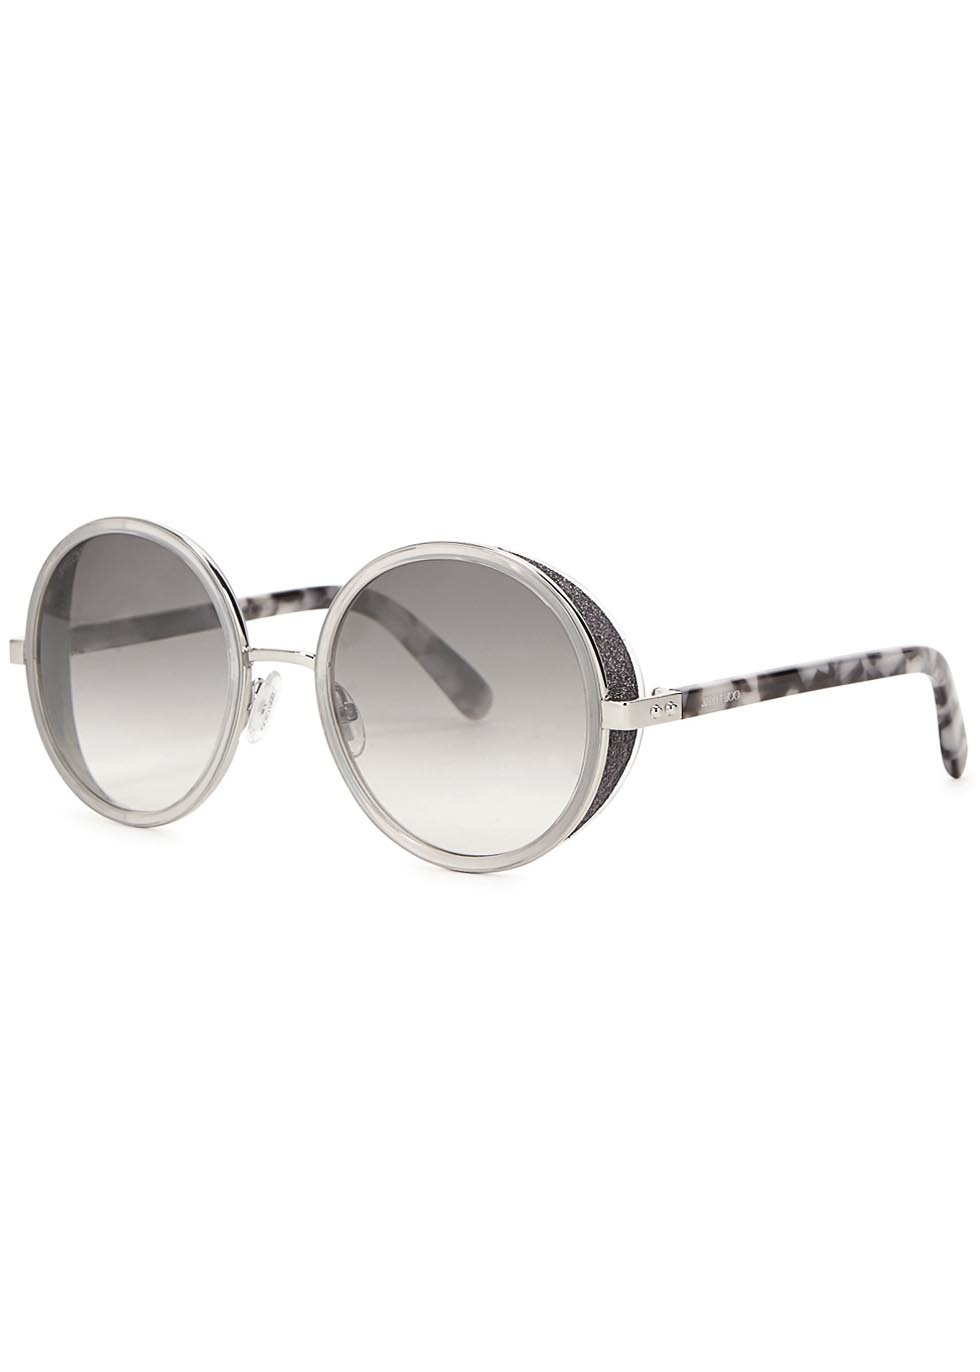 Andie Grey Mirrored Sunglasses - secondary colour: white; predominant colour: silver; style: round; size: standard; material: plastic/rubber; occasions: holiday; finish: plain; pattern: patterned/print; season: a/w 2015; wardrobe: highlight